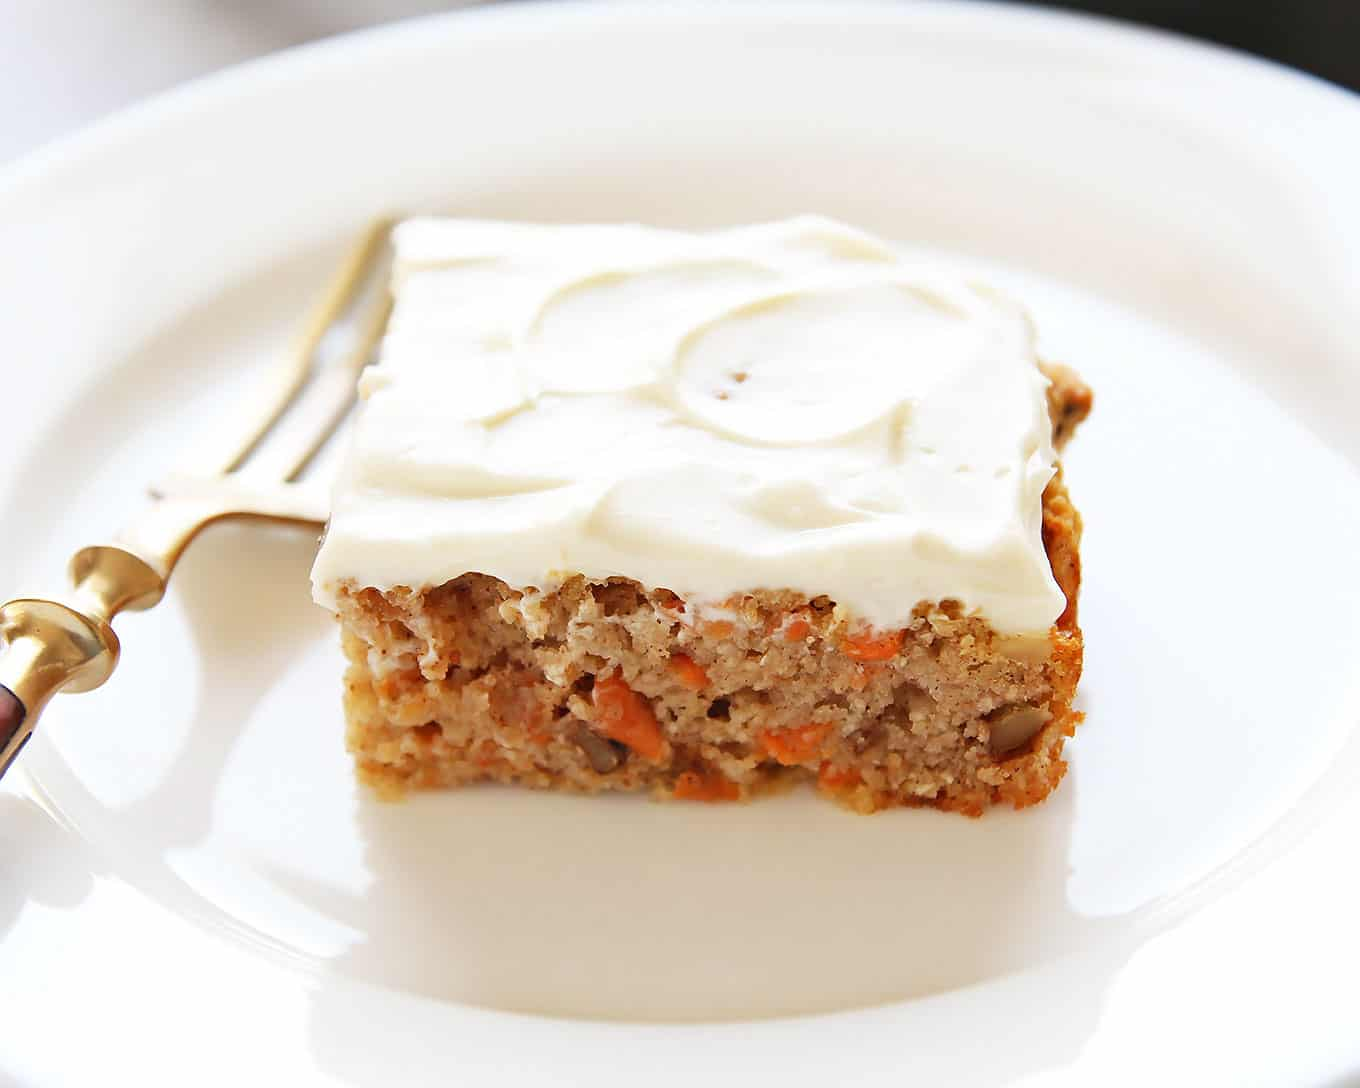 Frosted Healthy Carrot Cake Slice